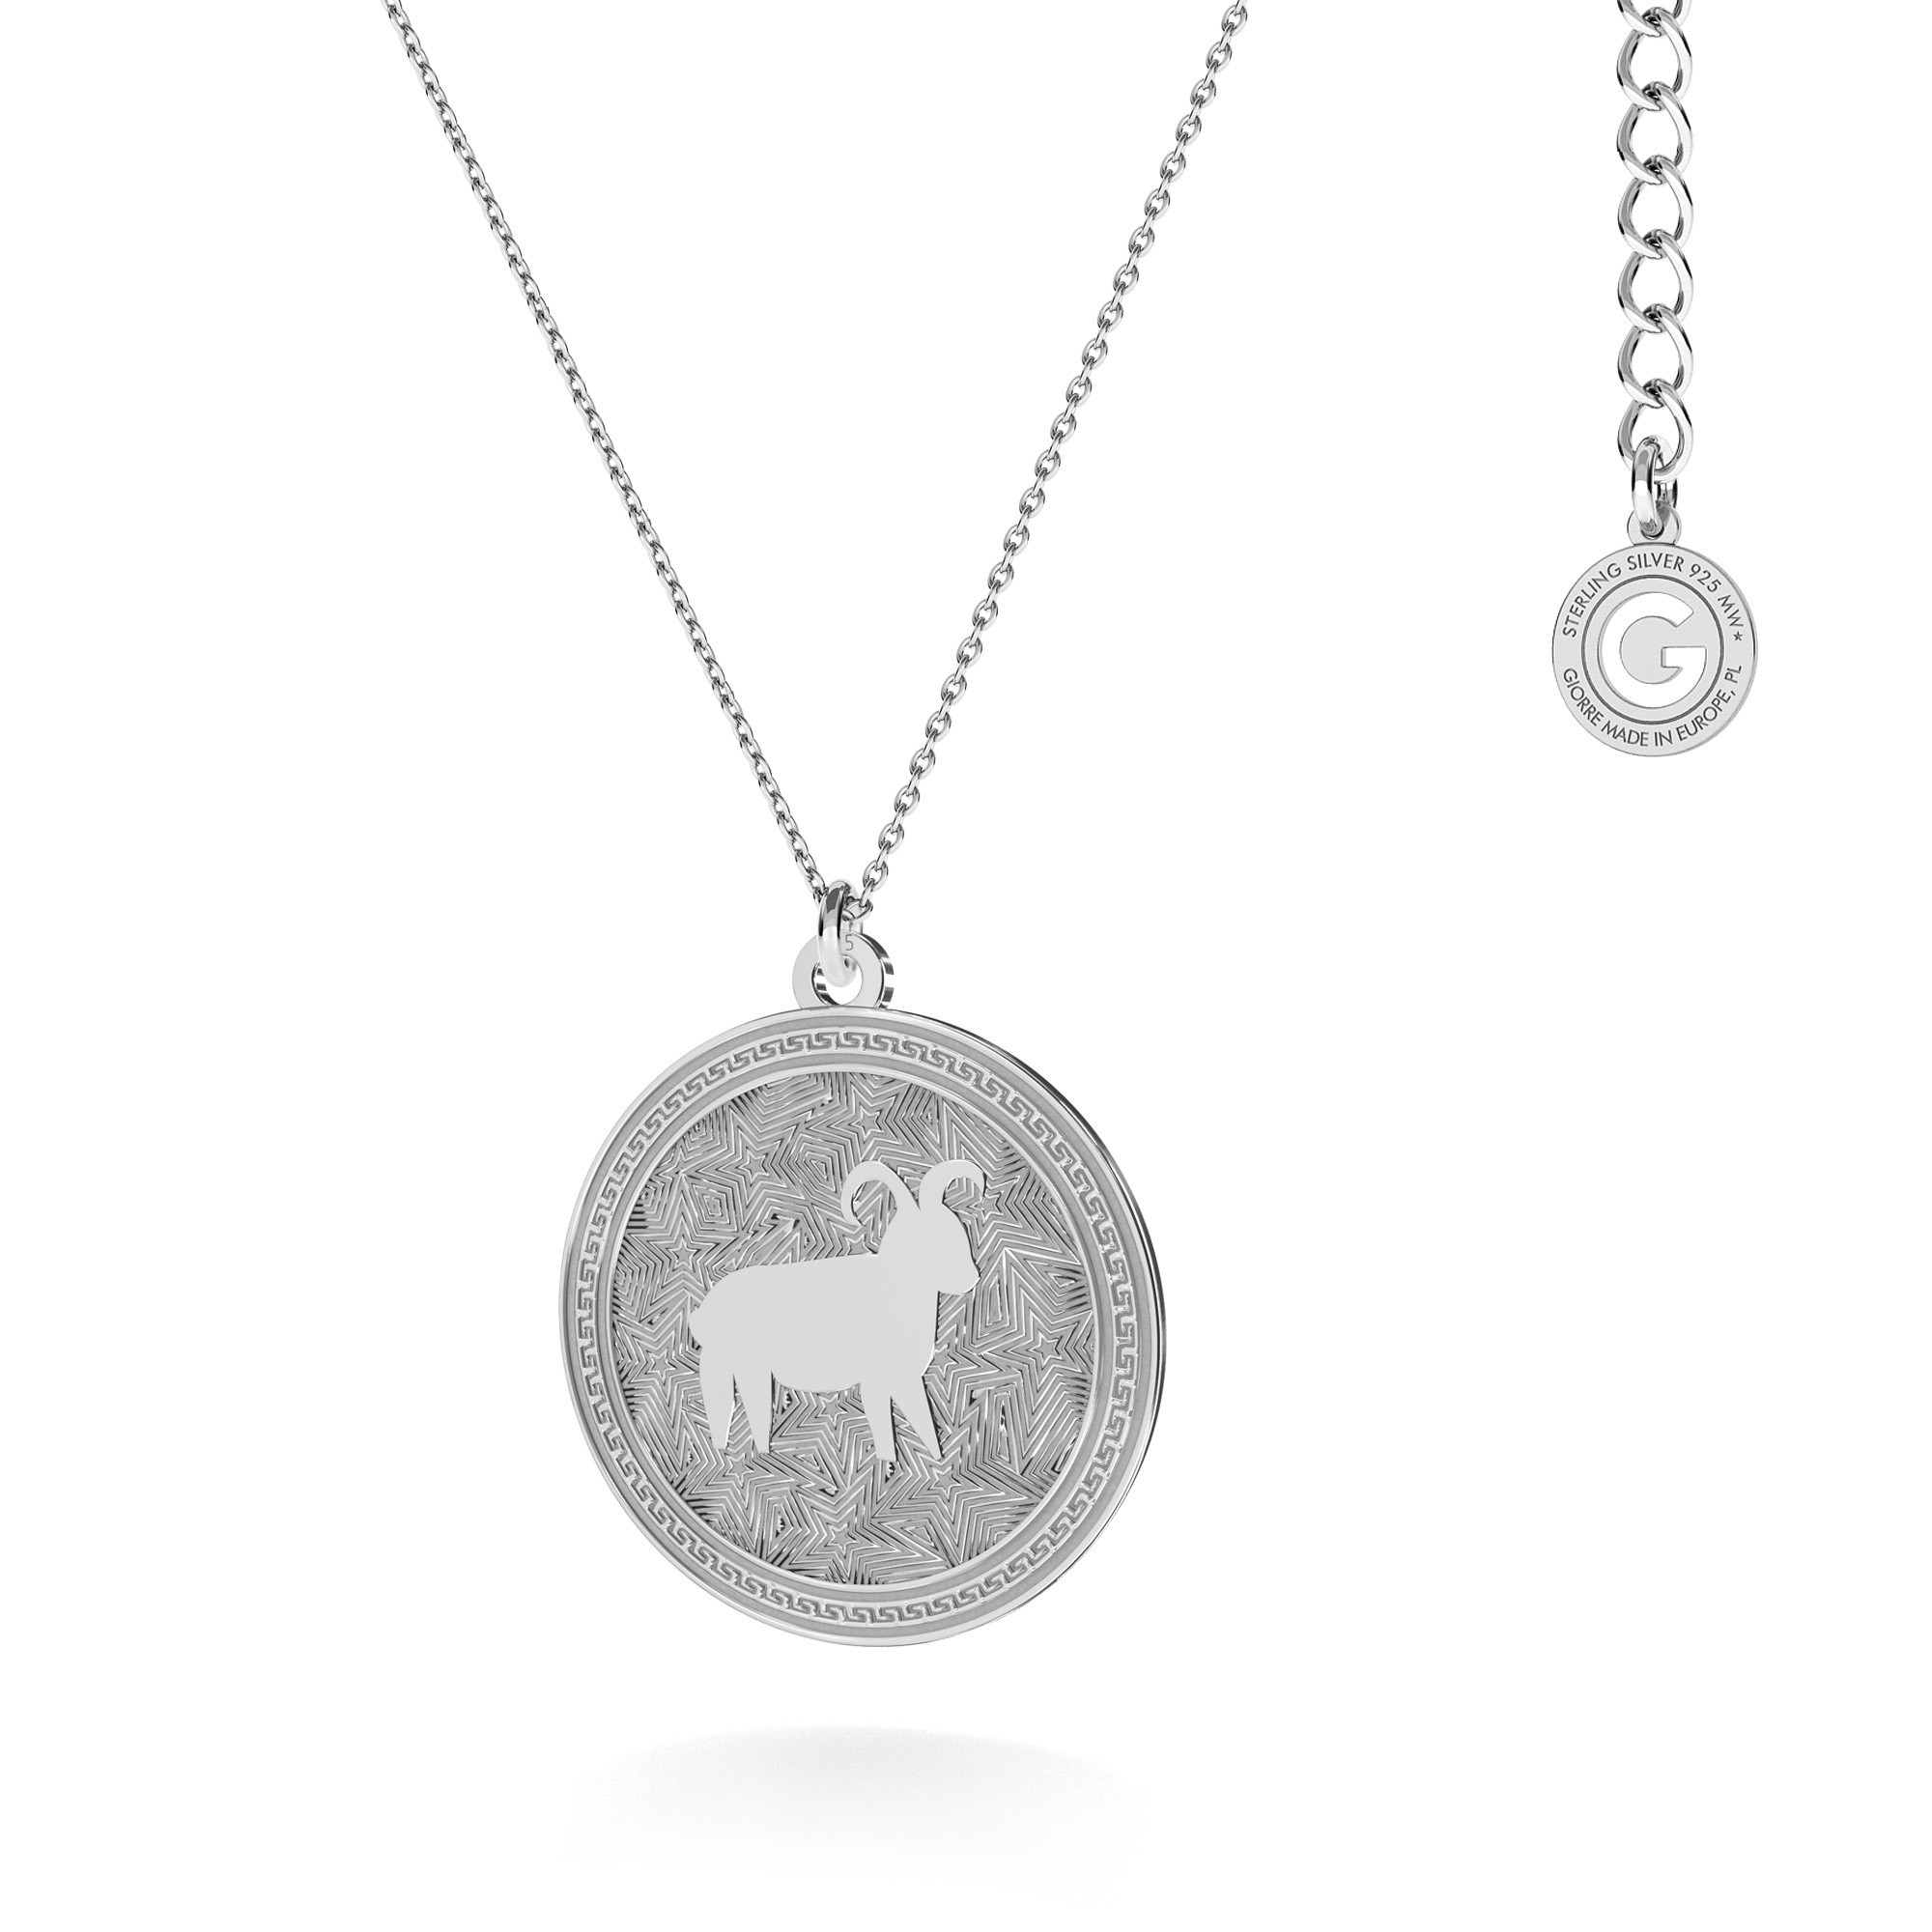 Aries zodiac sign necklace silver 925